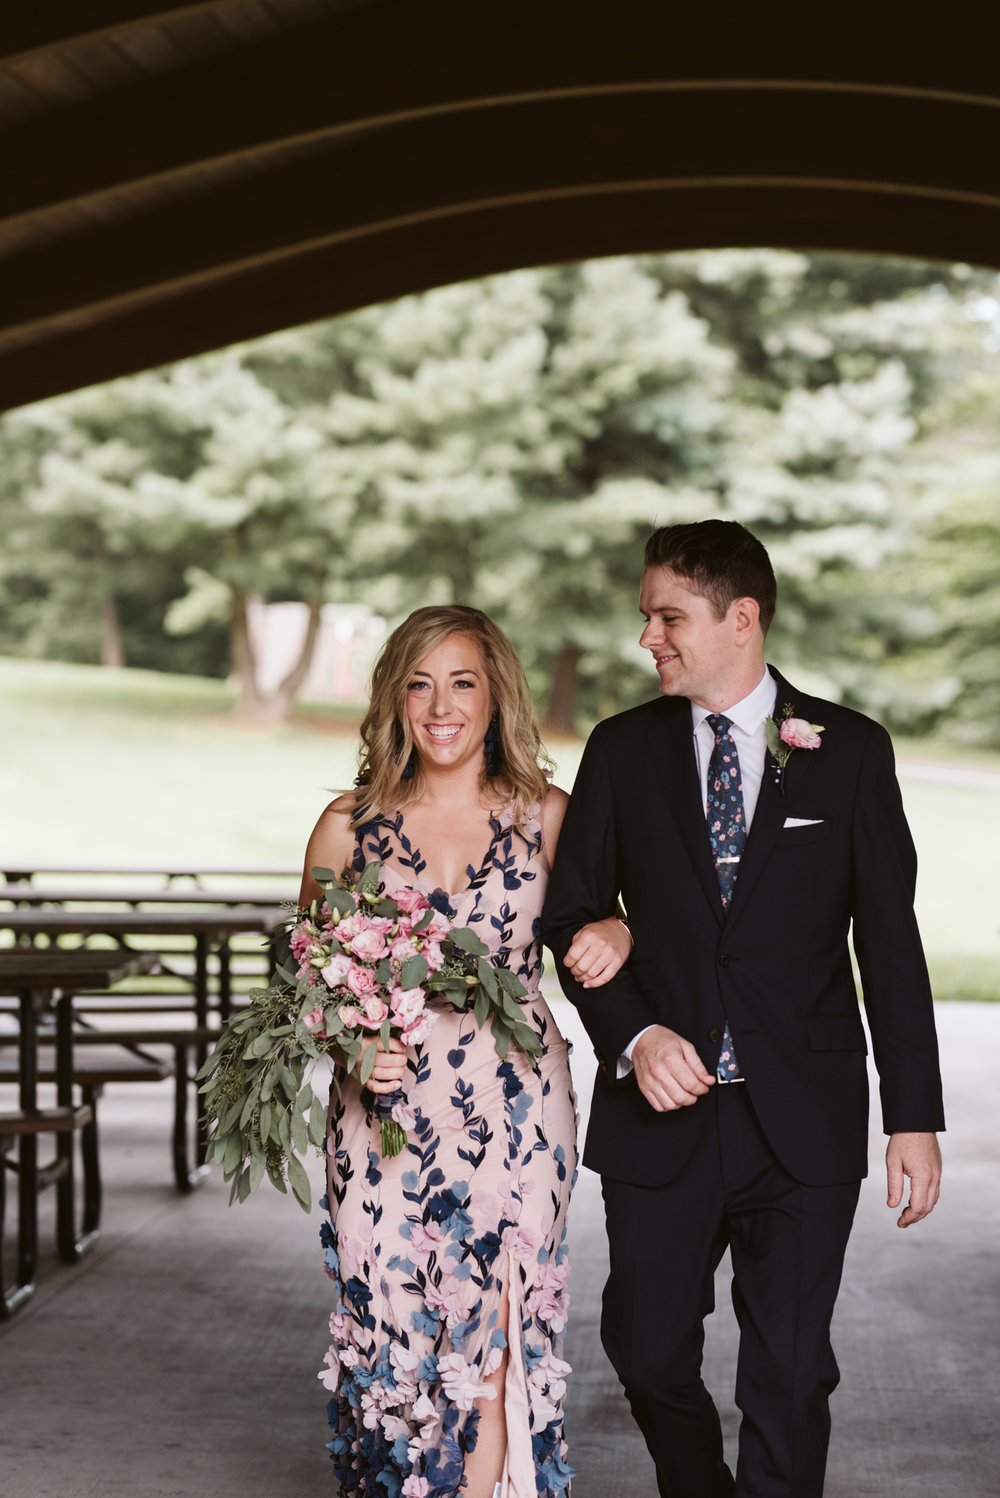 Pop-up Ceremony, Outdoor Wedding, Casual, Simple, Lake Roland, Baltimore, Maryland Wedding Photographer, Laid Back, DIY, Bride and Groom Walking Down Aisle, Suit Supply, Marchesa Notte Dress